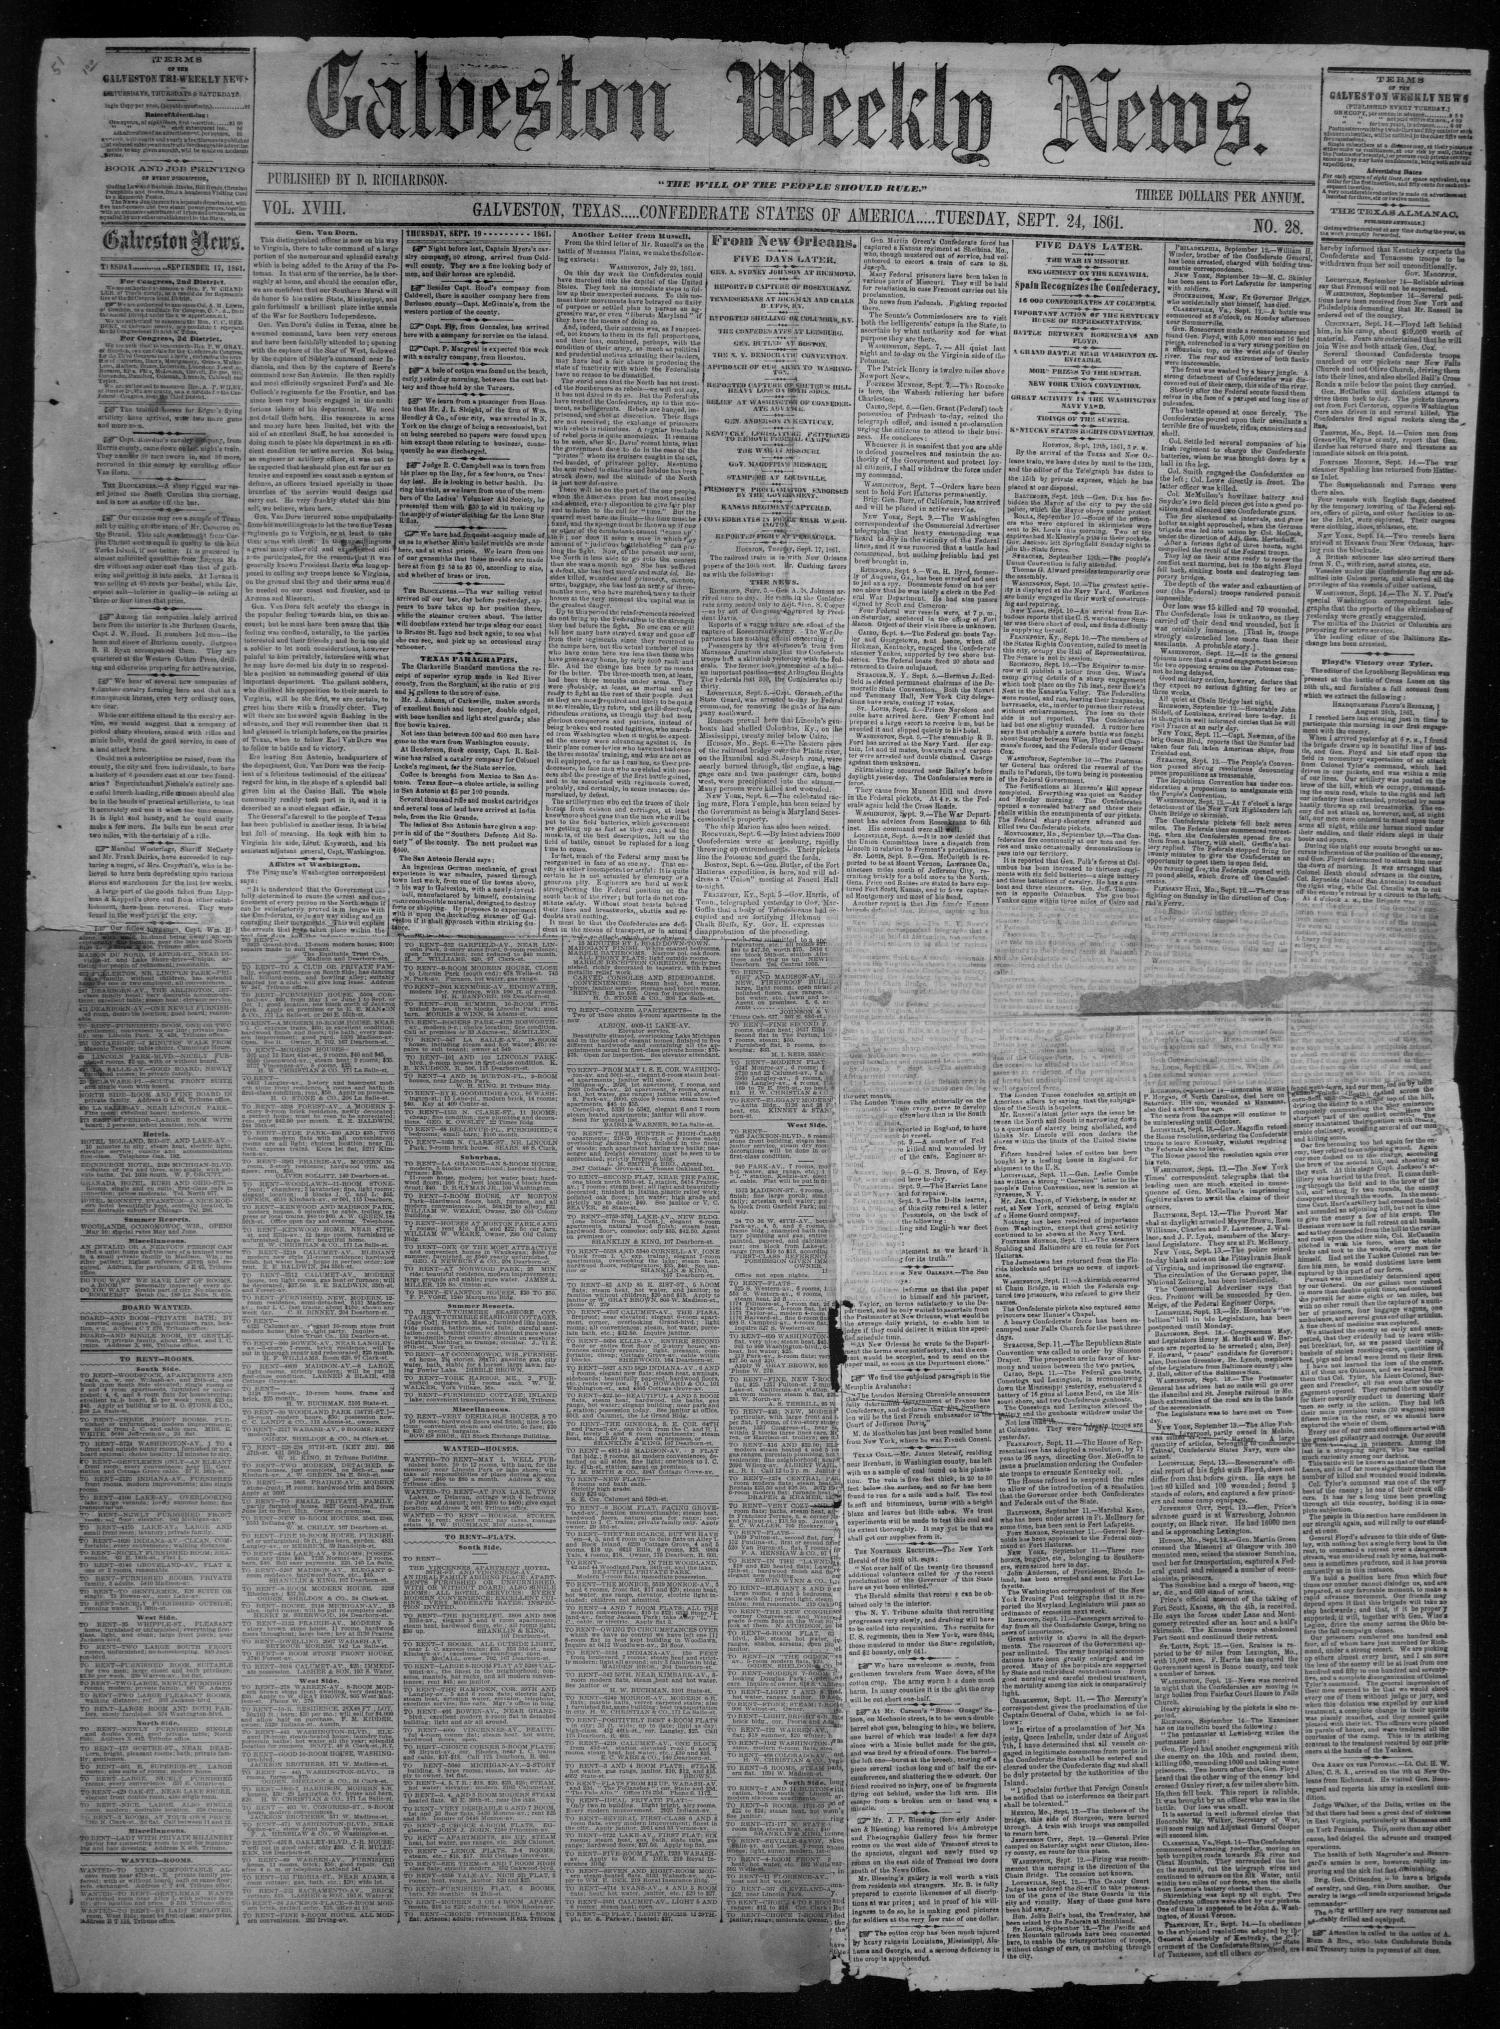 Galveston Weekly News (Galveston, Tex.), Vol. 18, No. 28, Ed. 1, Tuesday, September 24, 1861                                                                                                      [Sequence #]: 1 of 2